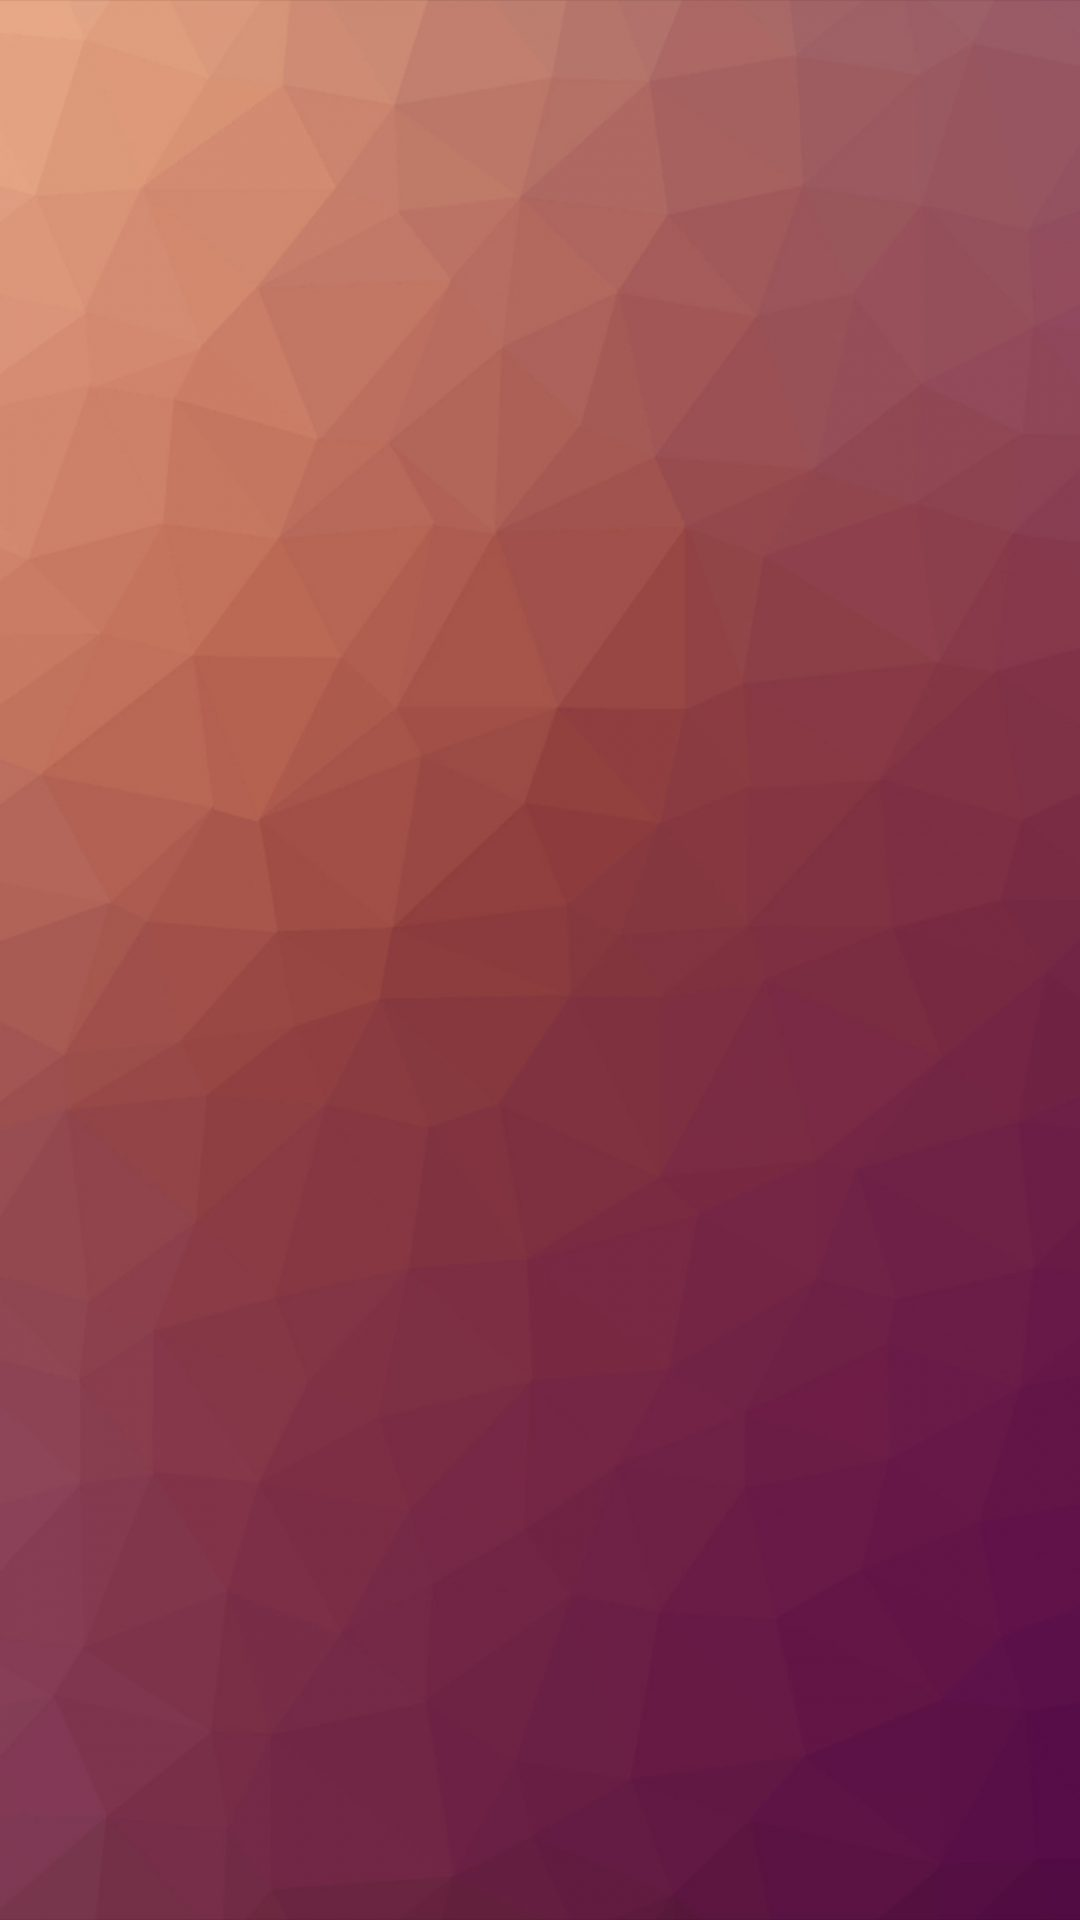 Poly Art Abstract Fire Red Pattern